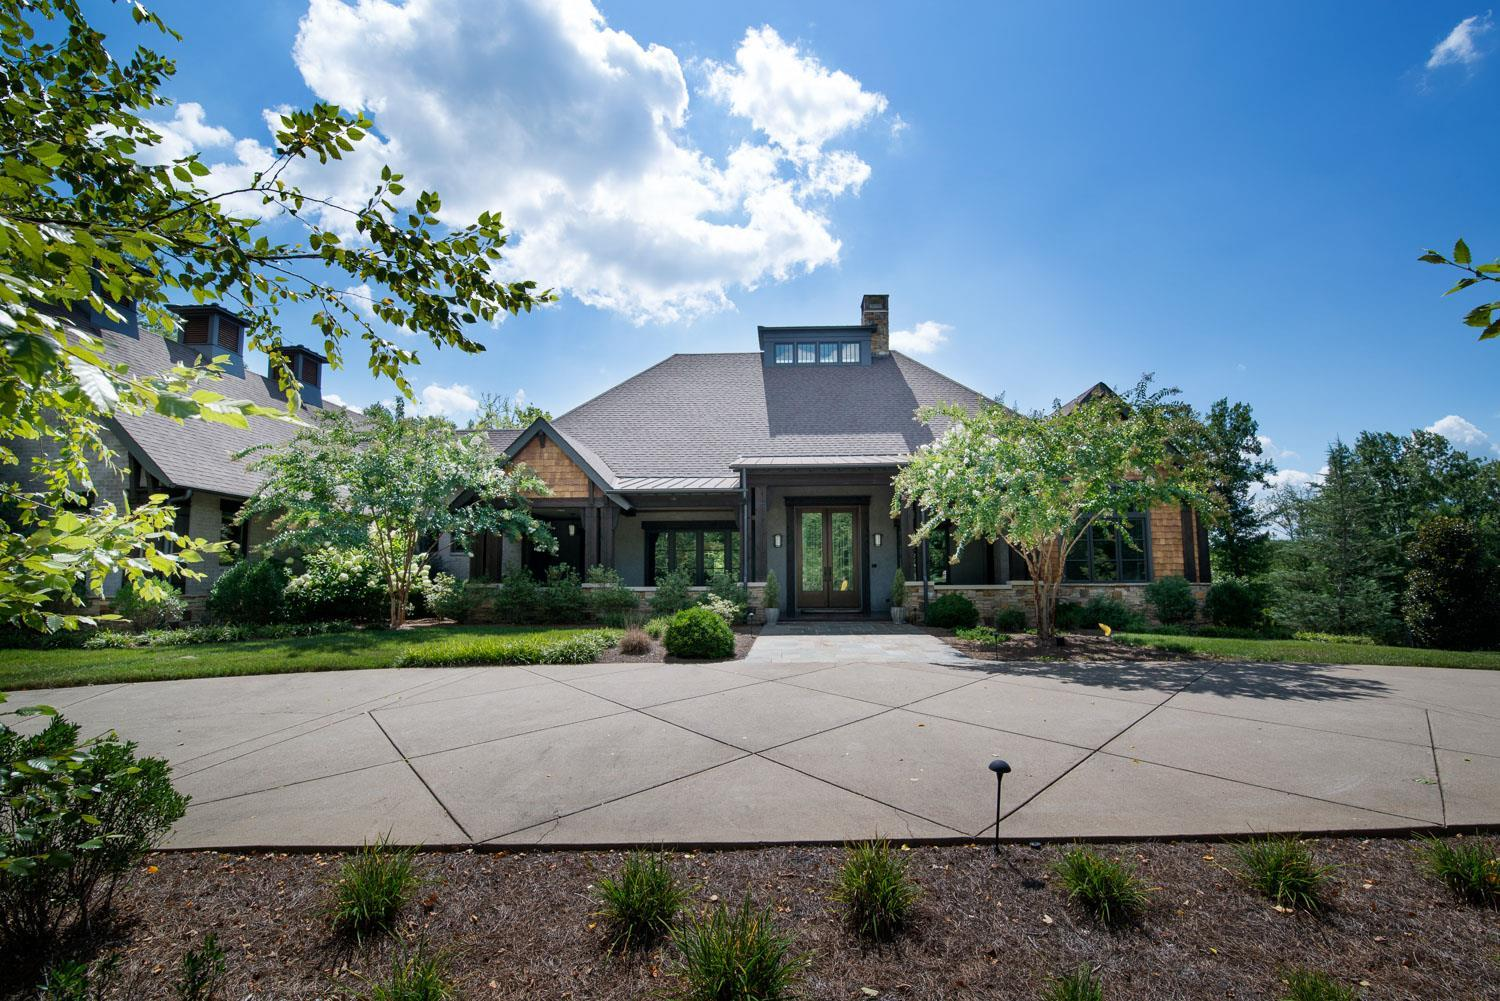 539 Trace Creek Dr, Nashville, TN 37221 - Nashville, TN real estate listing